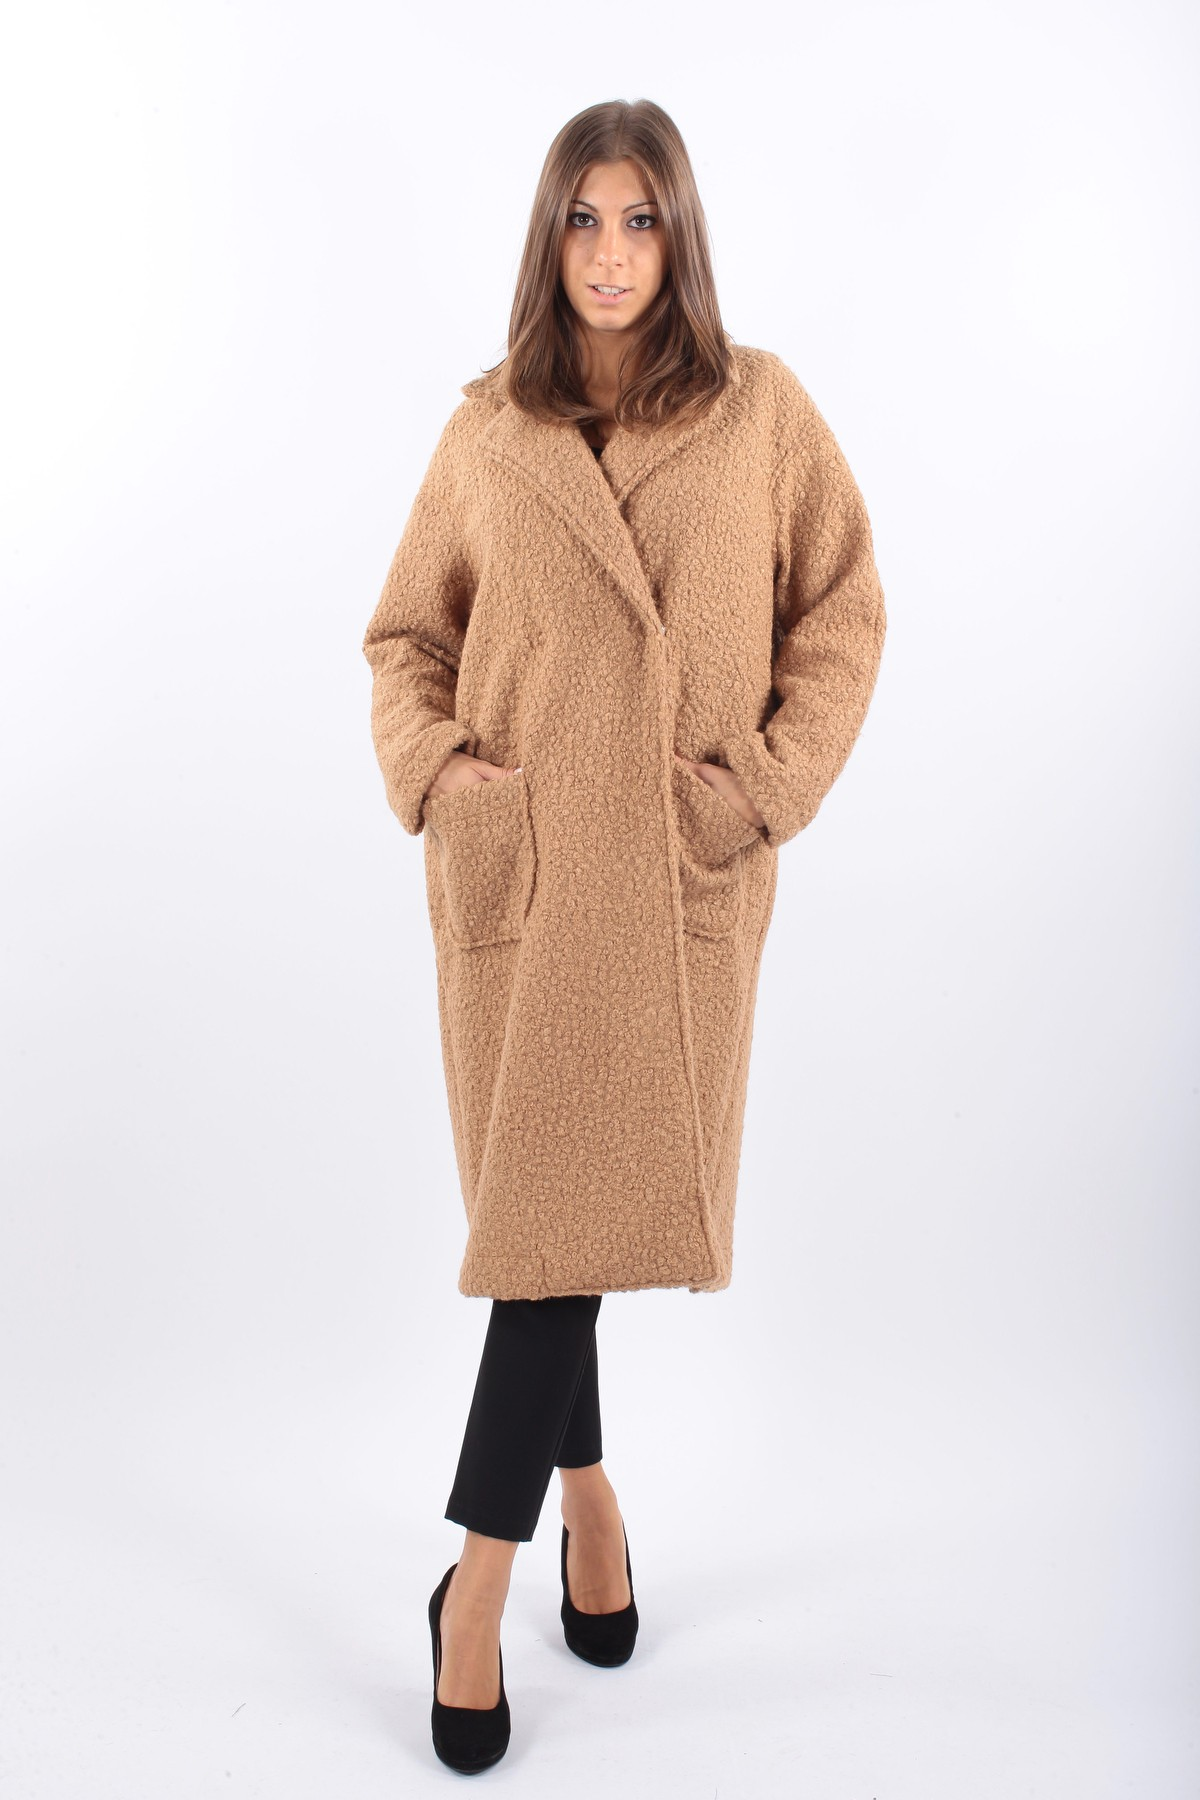 CAPPOTTO IN TESSUTO BUCLET for women - CAMEL - Paquito Pronto Moda Shop Online